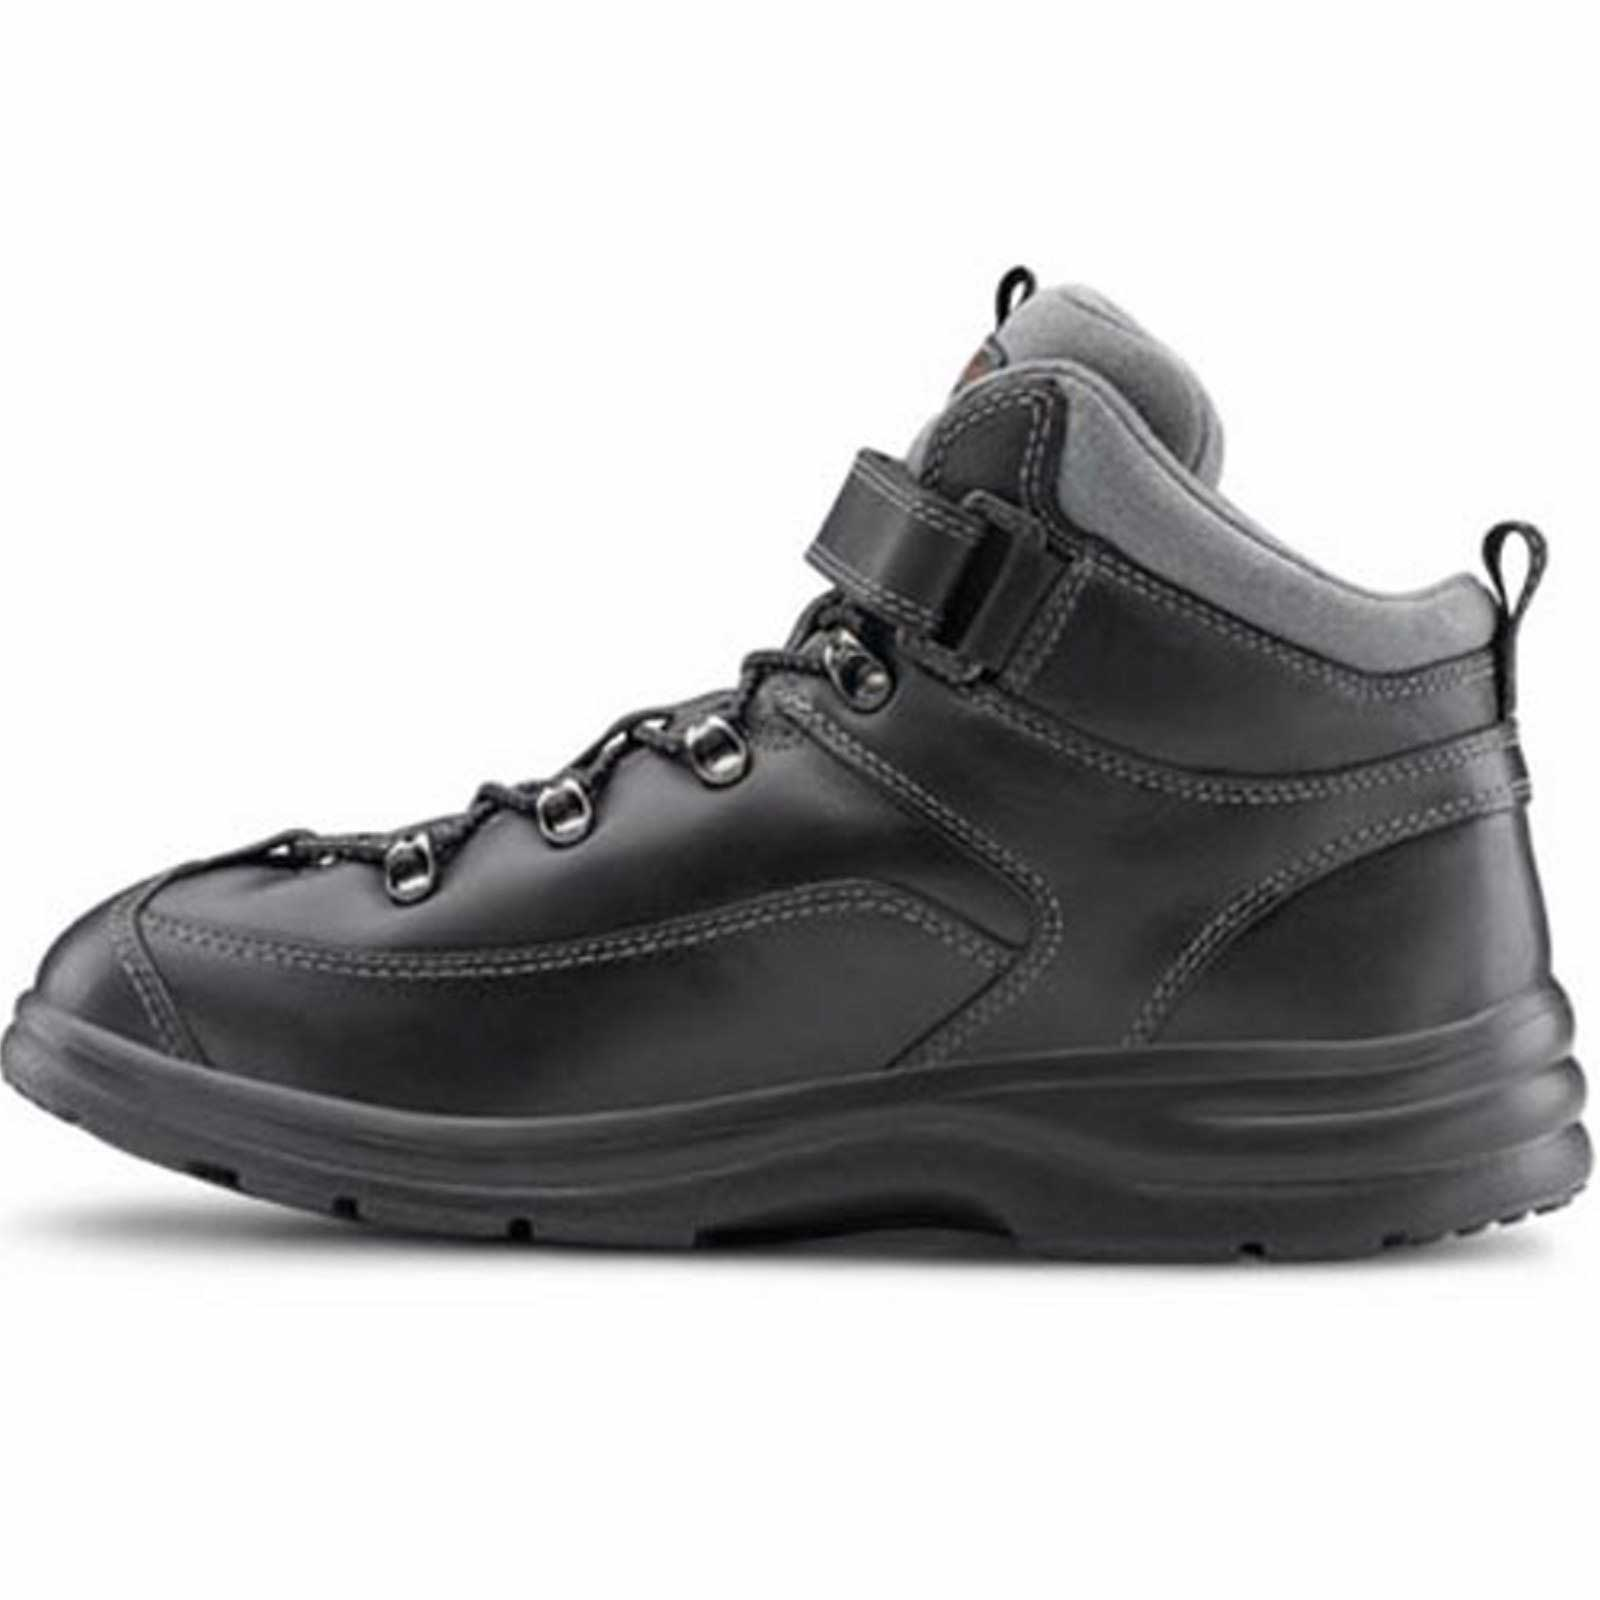 durability things were and thegearhunt reviewed tested hiking rated for boots some the since are of big lineup comfort best comfortable us comforter in hardest accessories